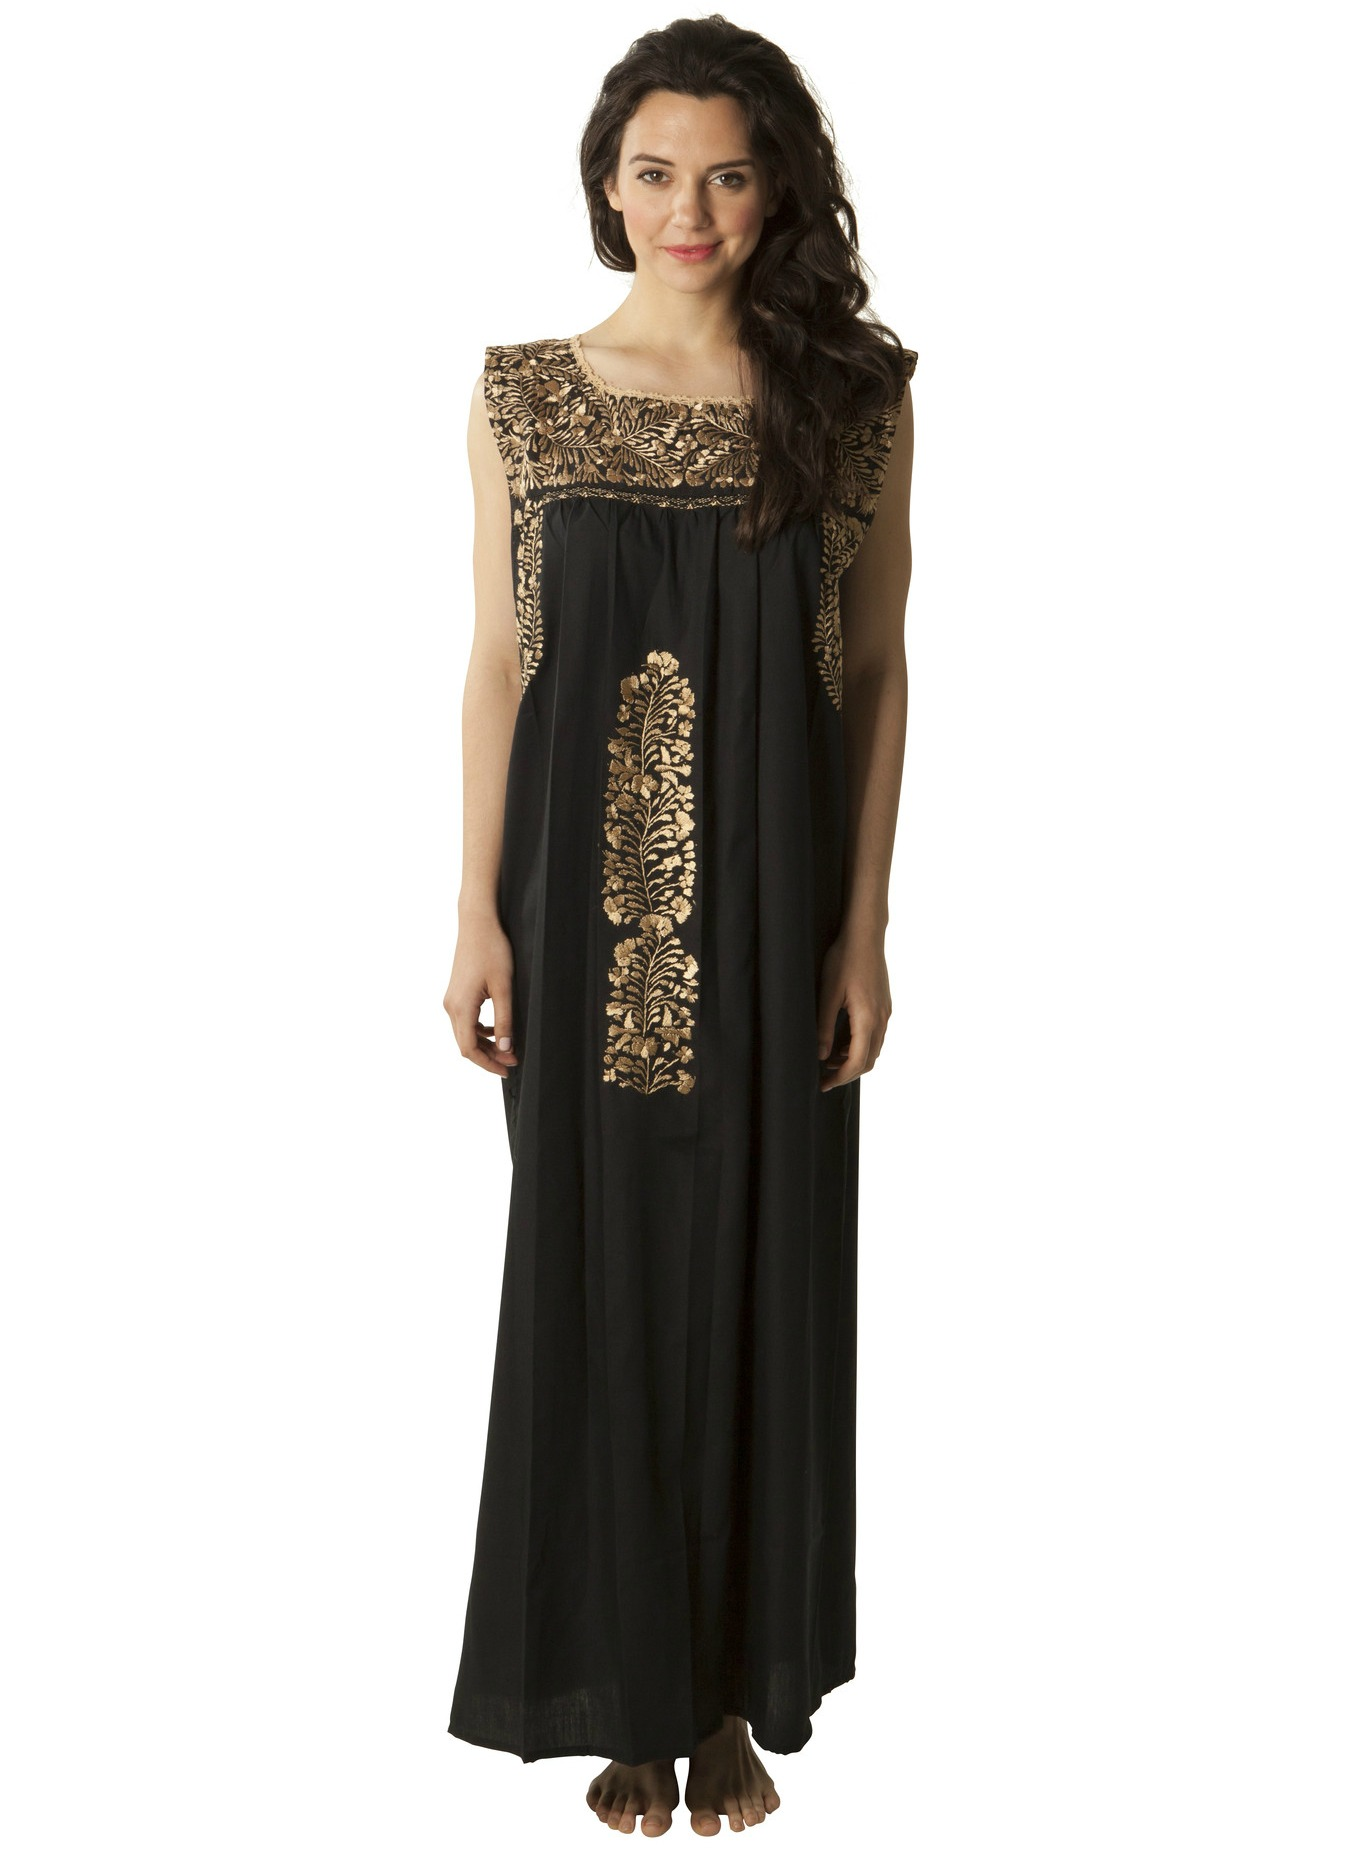 Black and Gold Maxi Dress from Mi Golondrina